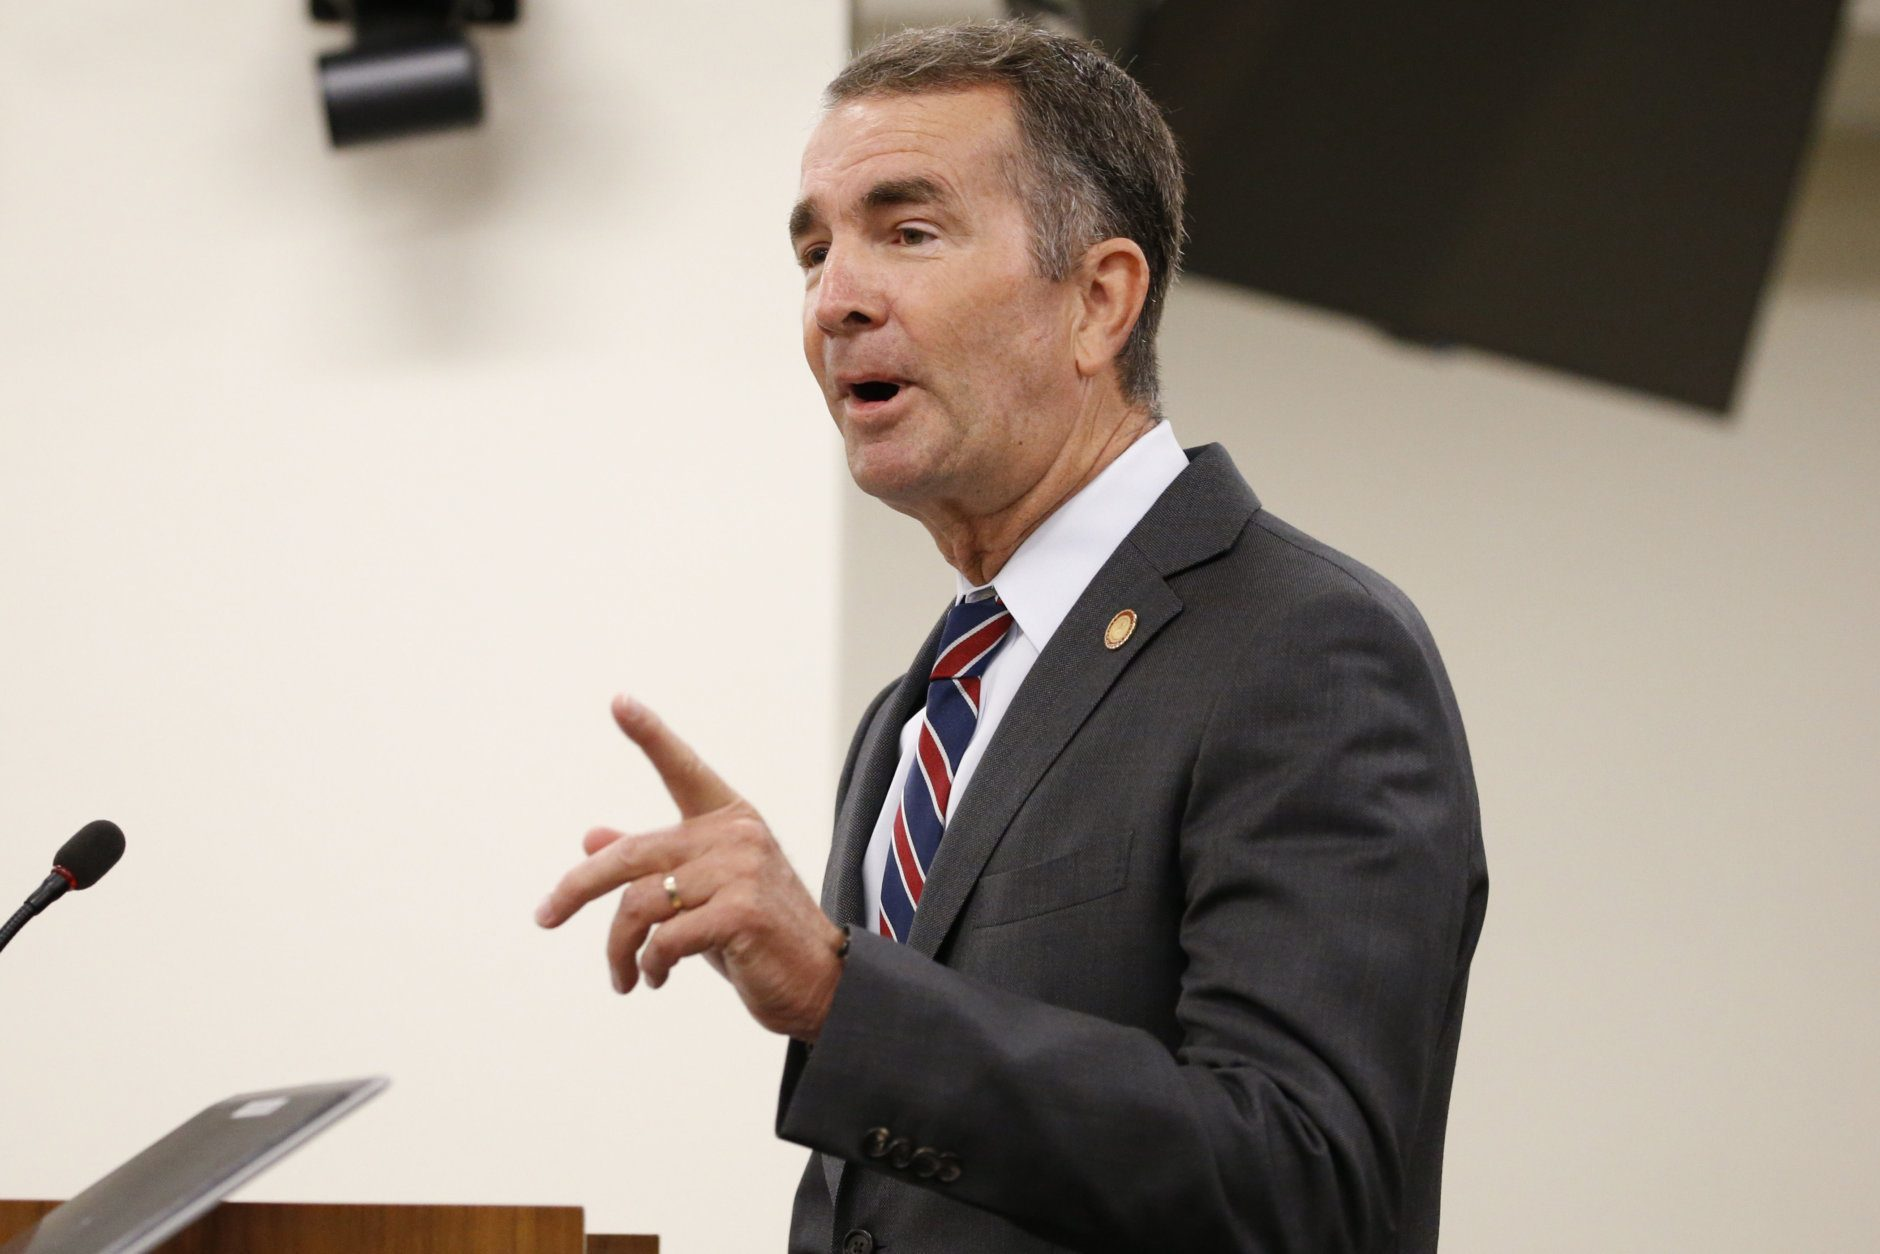 Virginia Gov. Ralph Northam gestures as he delivers his budget update before a joint meeting of the House and Senate money committees at the Capitol in Richmond, Va., Tuesday, Aug. 20, 2019. (AP Photo/Steve Helber)